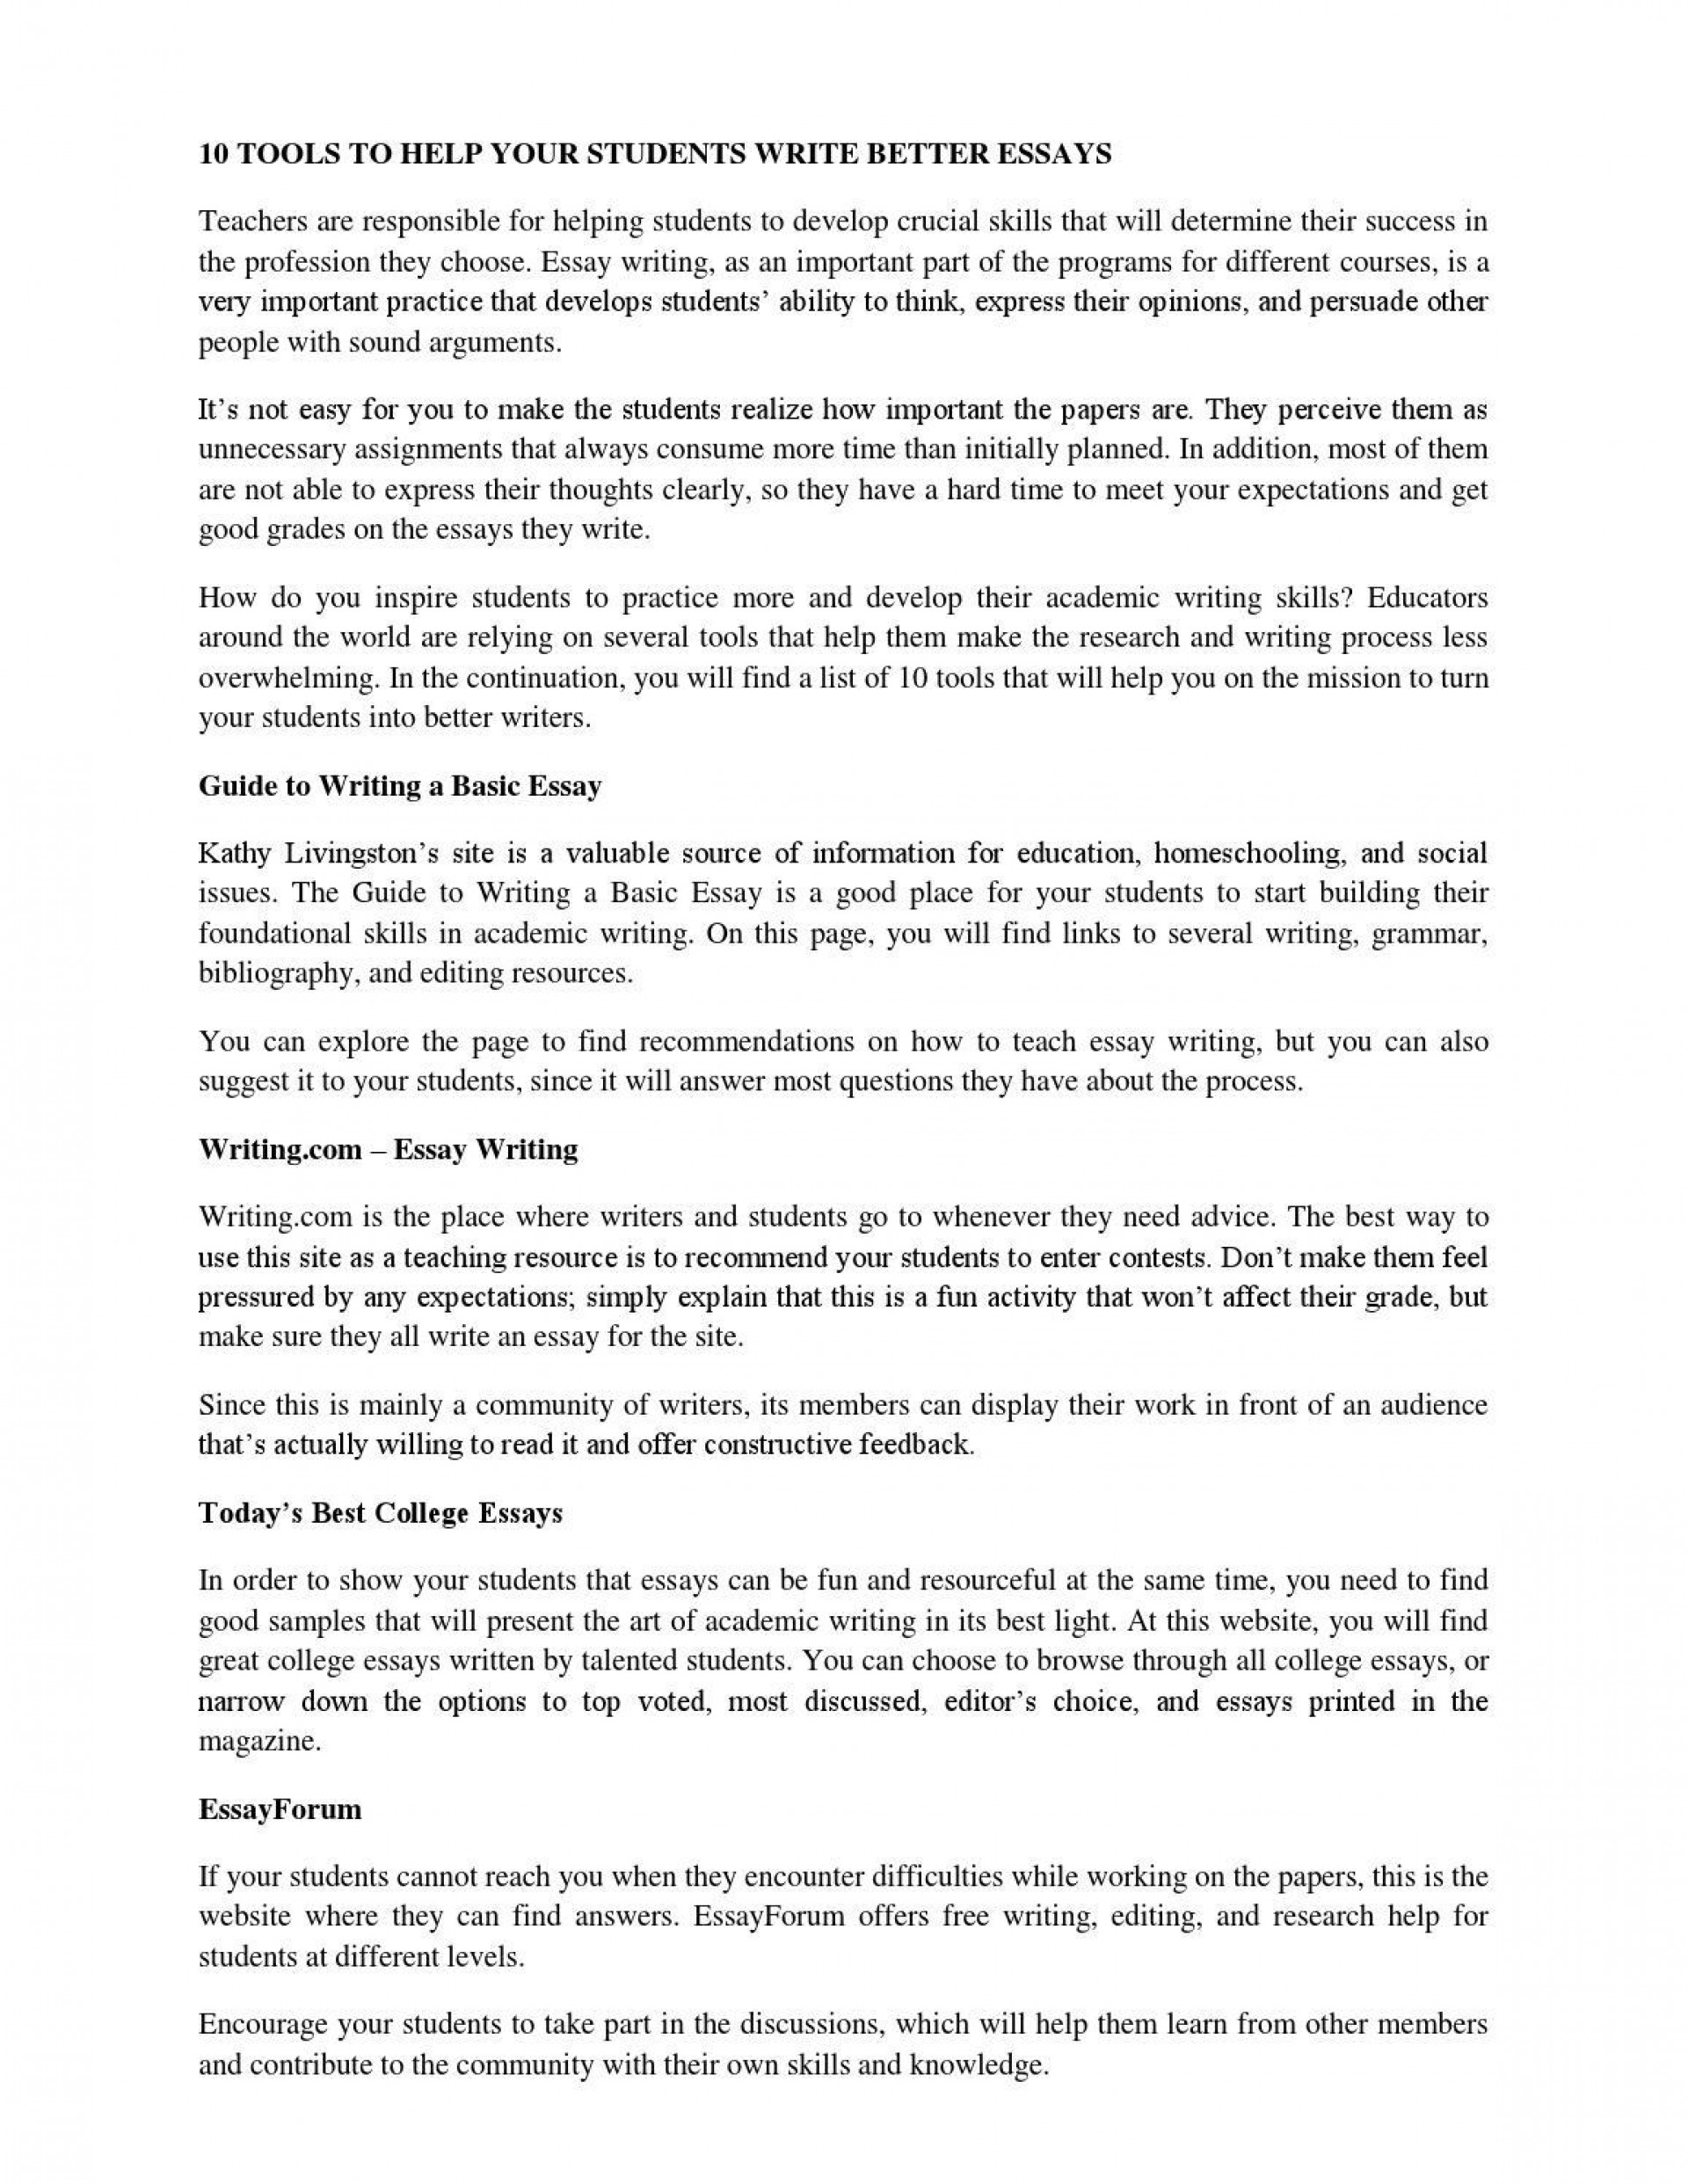 025 Essay Writing Websites Reviews For Students Editing Free Page Research Paper Example That20 Online Stirring Papers Plagiarism Checker Psychology Download 1920